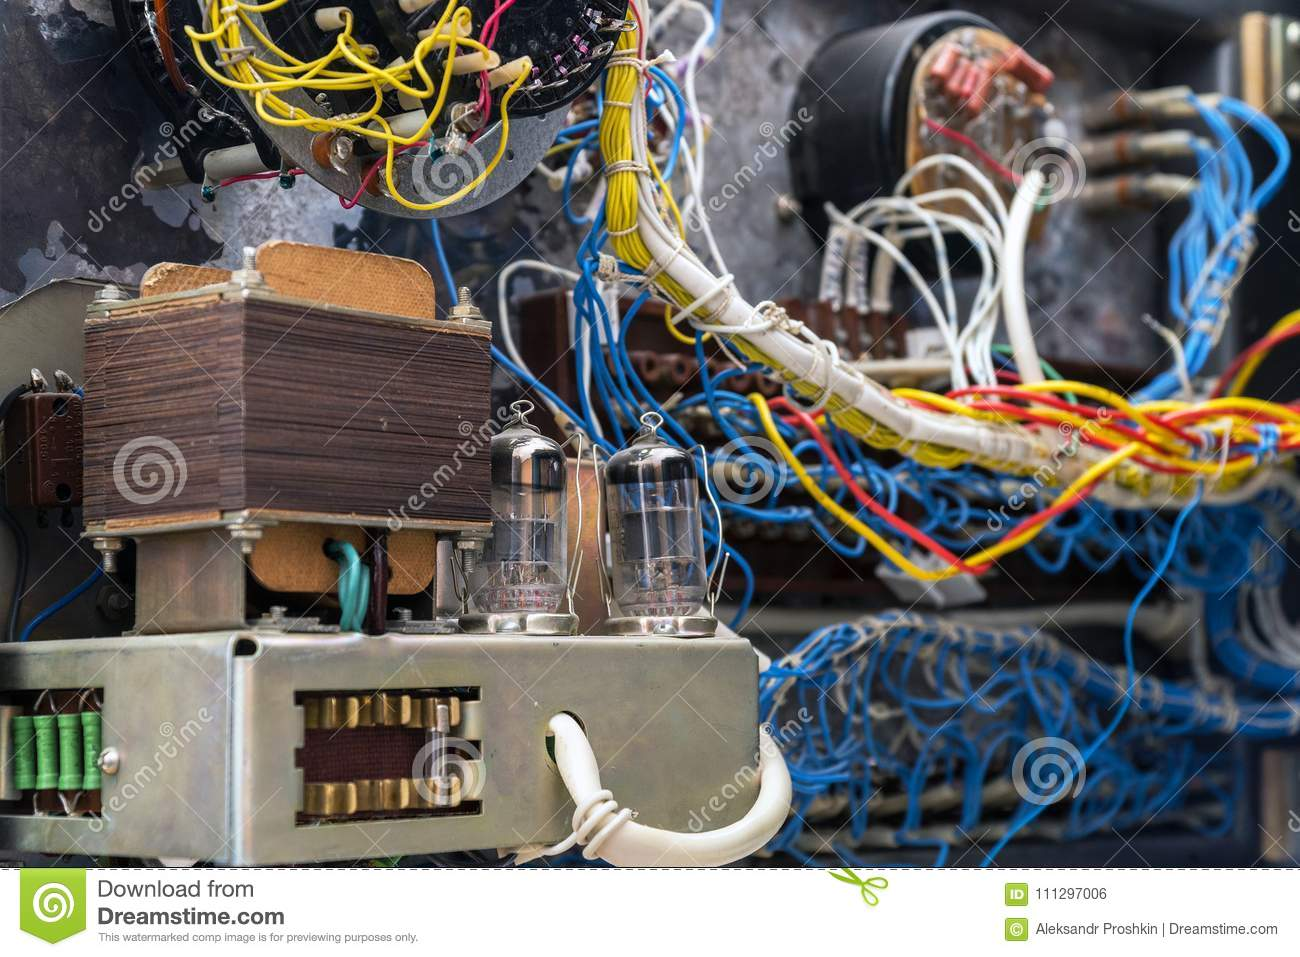 hight resolution of transformer radio tubes and wires